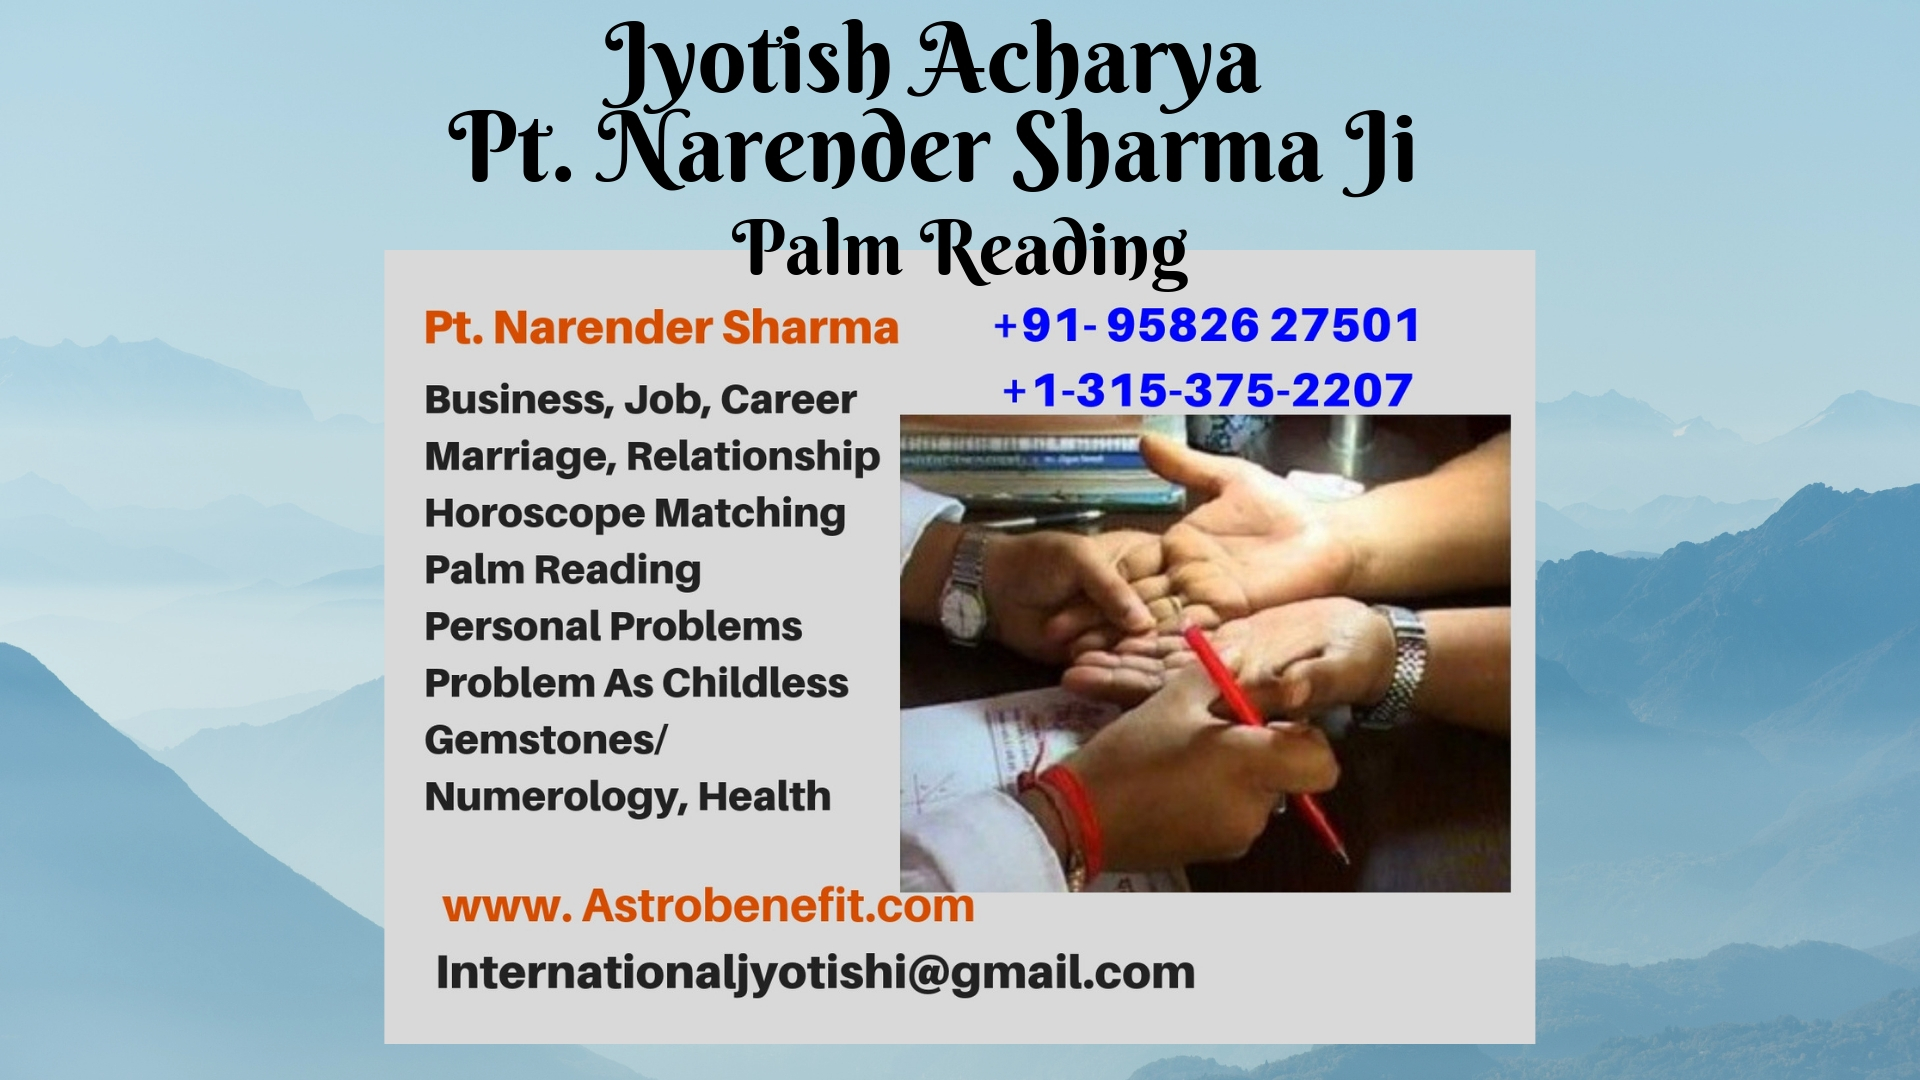 Best Astrologer in London- UK +44-114-360-599 Pt. Narendra Sharma